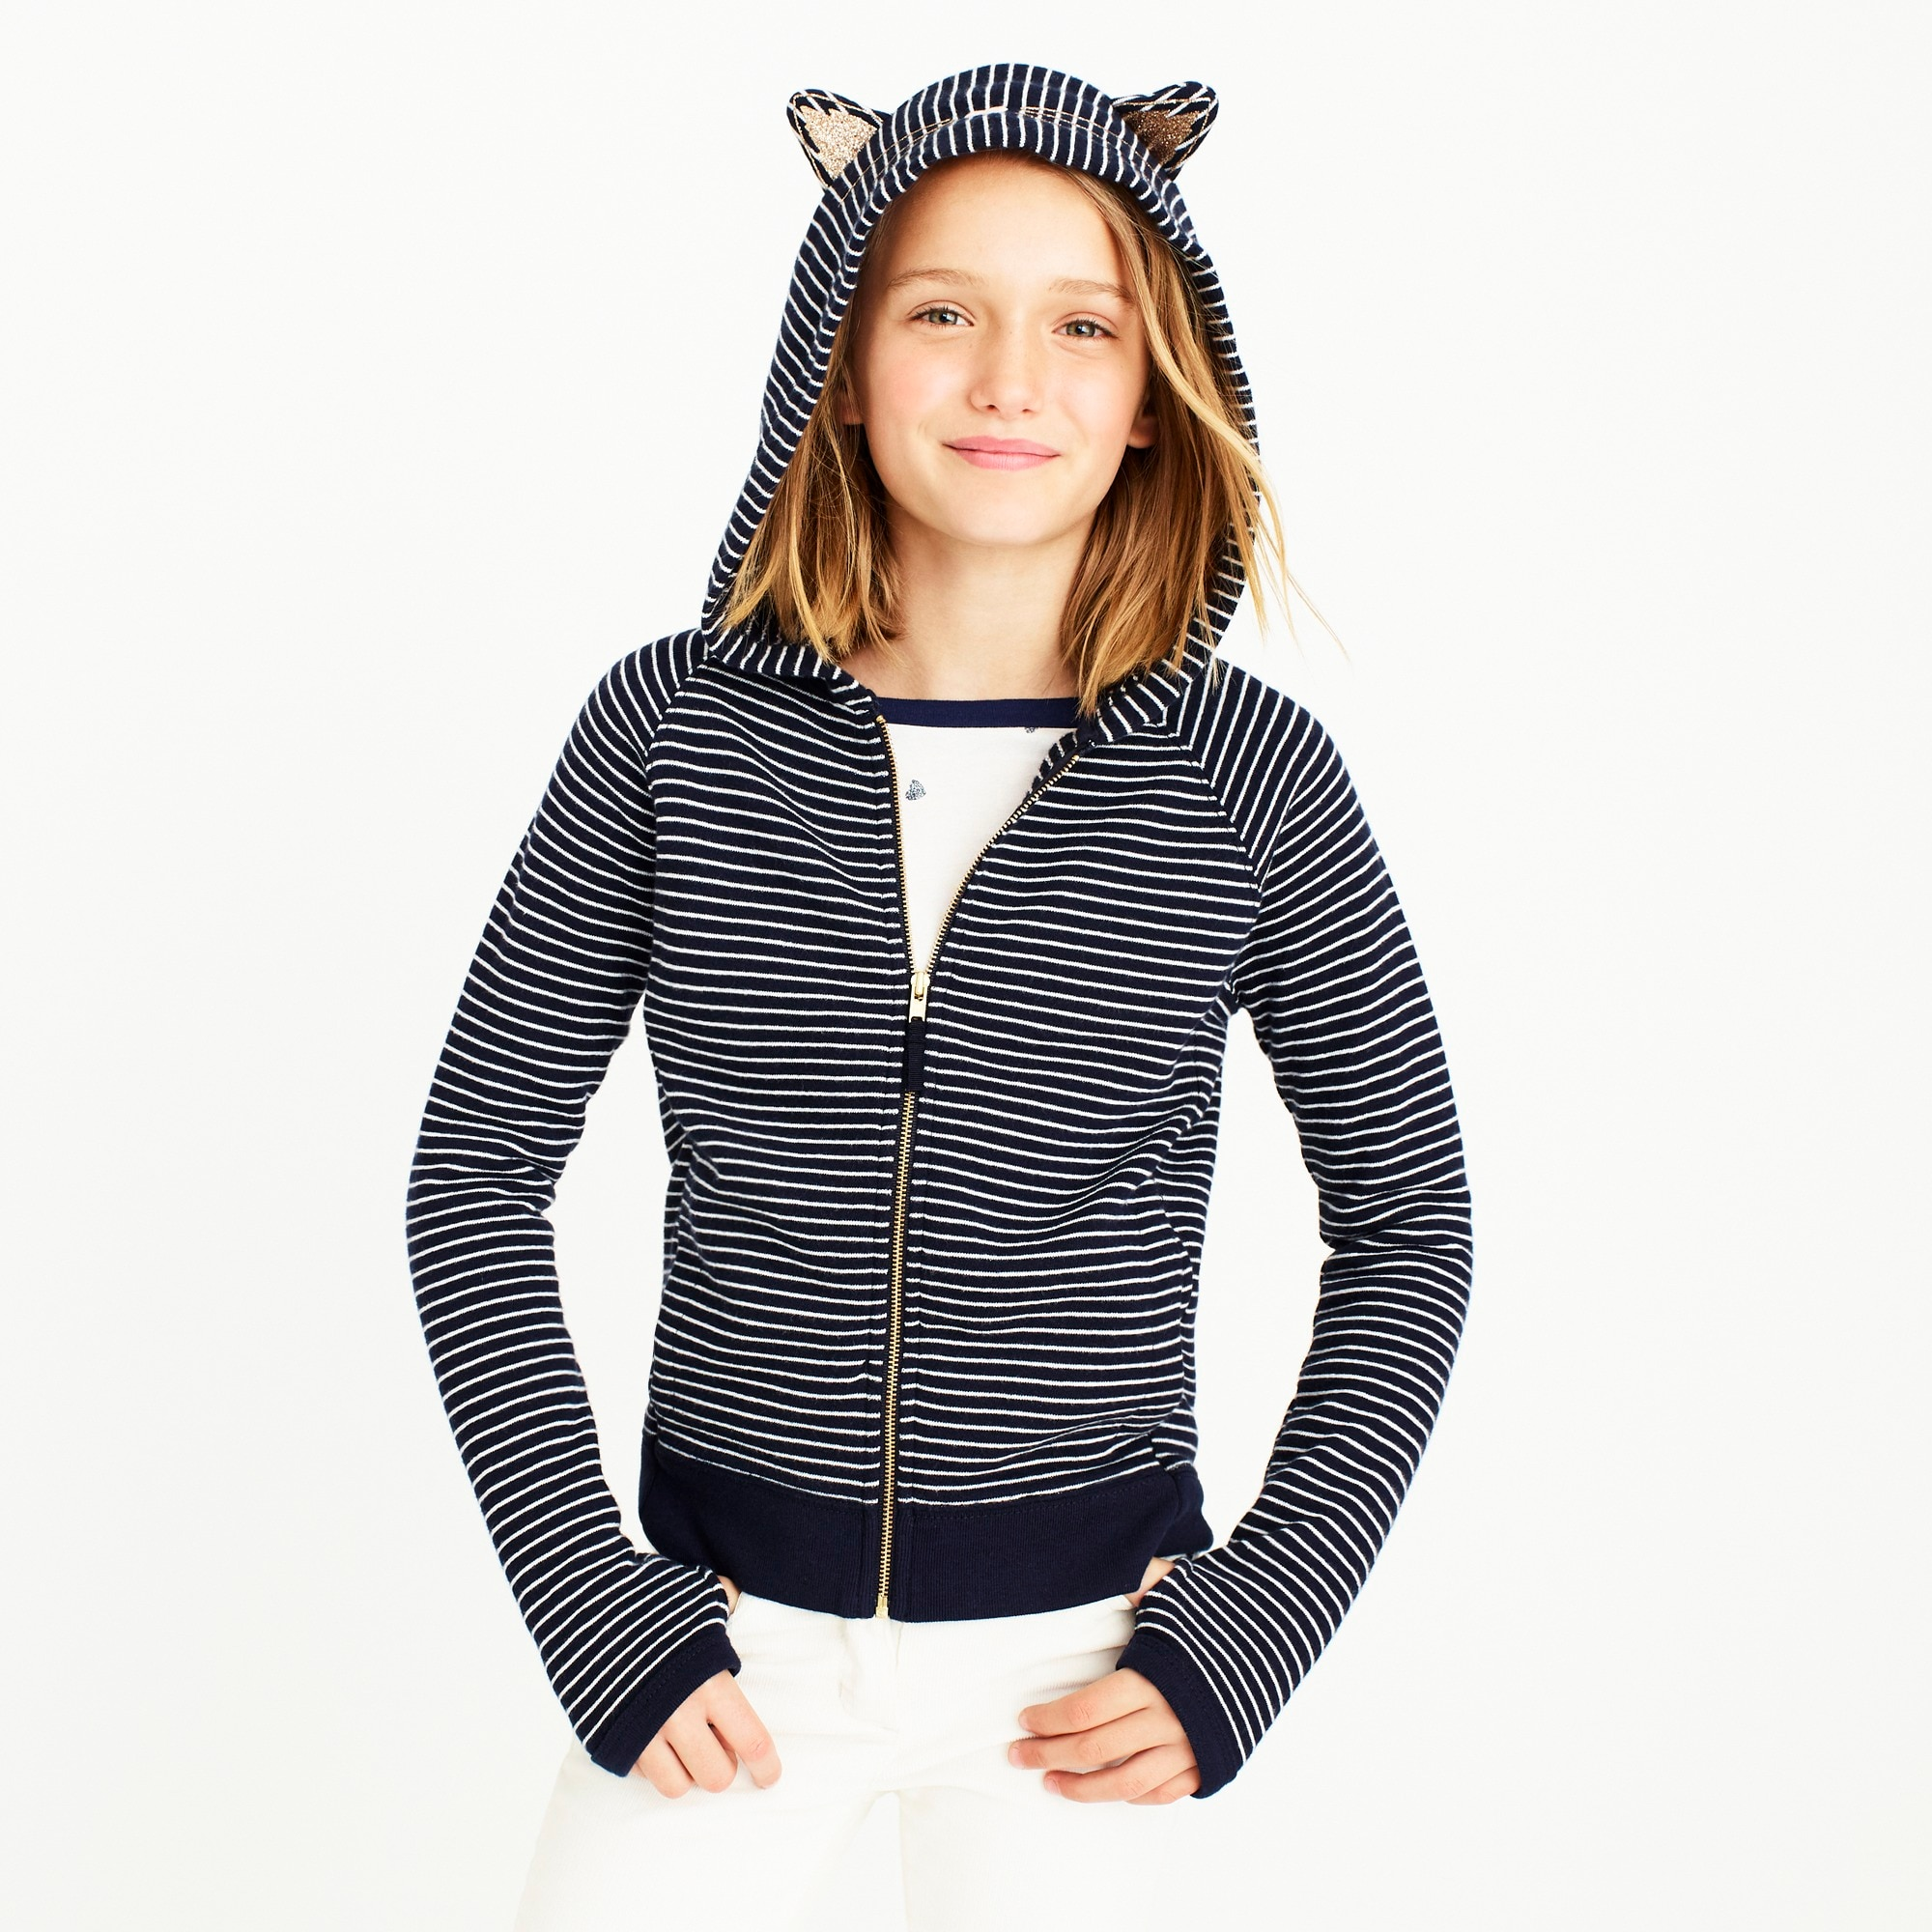 girls' striped kitty sweatshirt : factorygirls sweatshirts